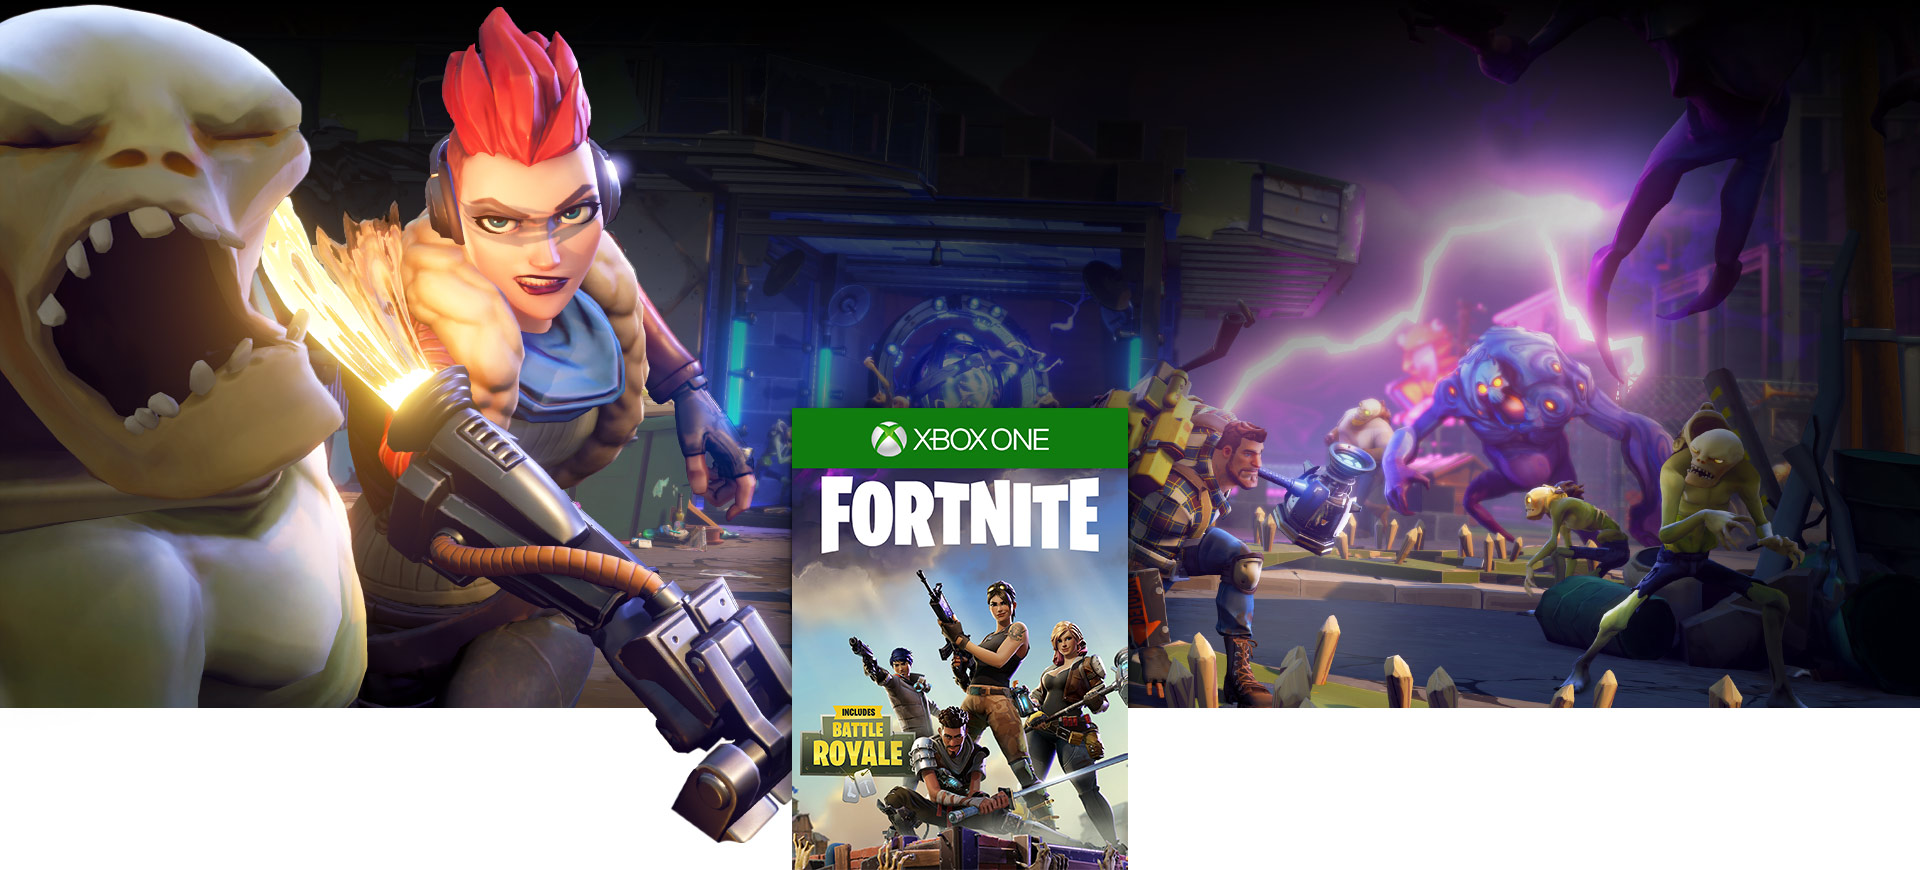 Fortnite boxshot, A female character punches a monster in the face